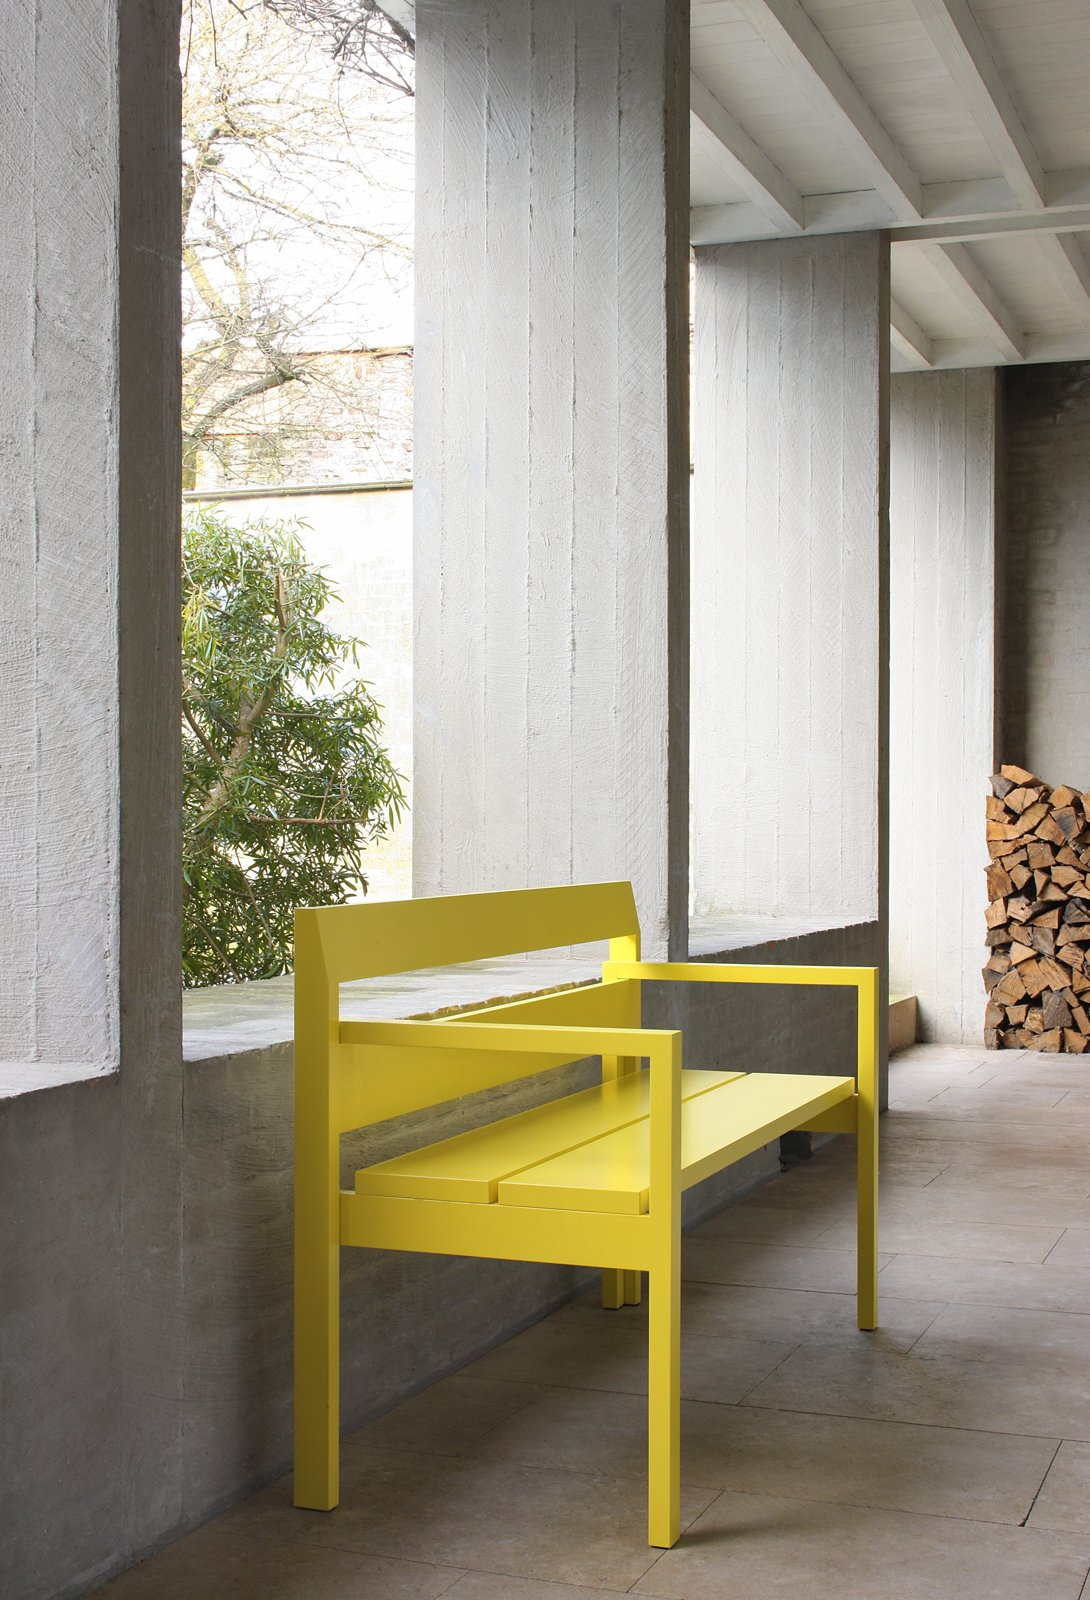 VMM Bench by Marc Supply and Anneli Lahtua: We like the sunny splash of color this bench adds to any space. Photo by Filip Dujardin 25 Bold Ways to Decorate with Yellow - Photo 15 of 25